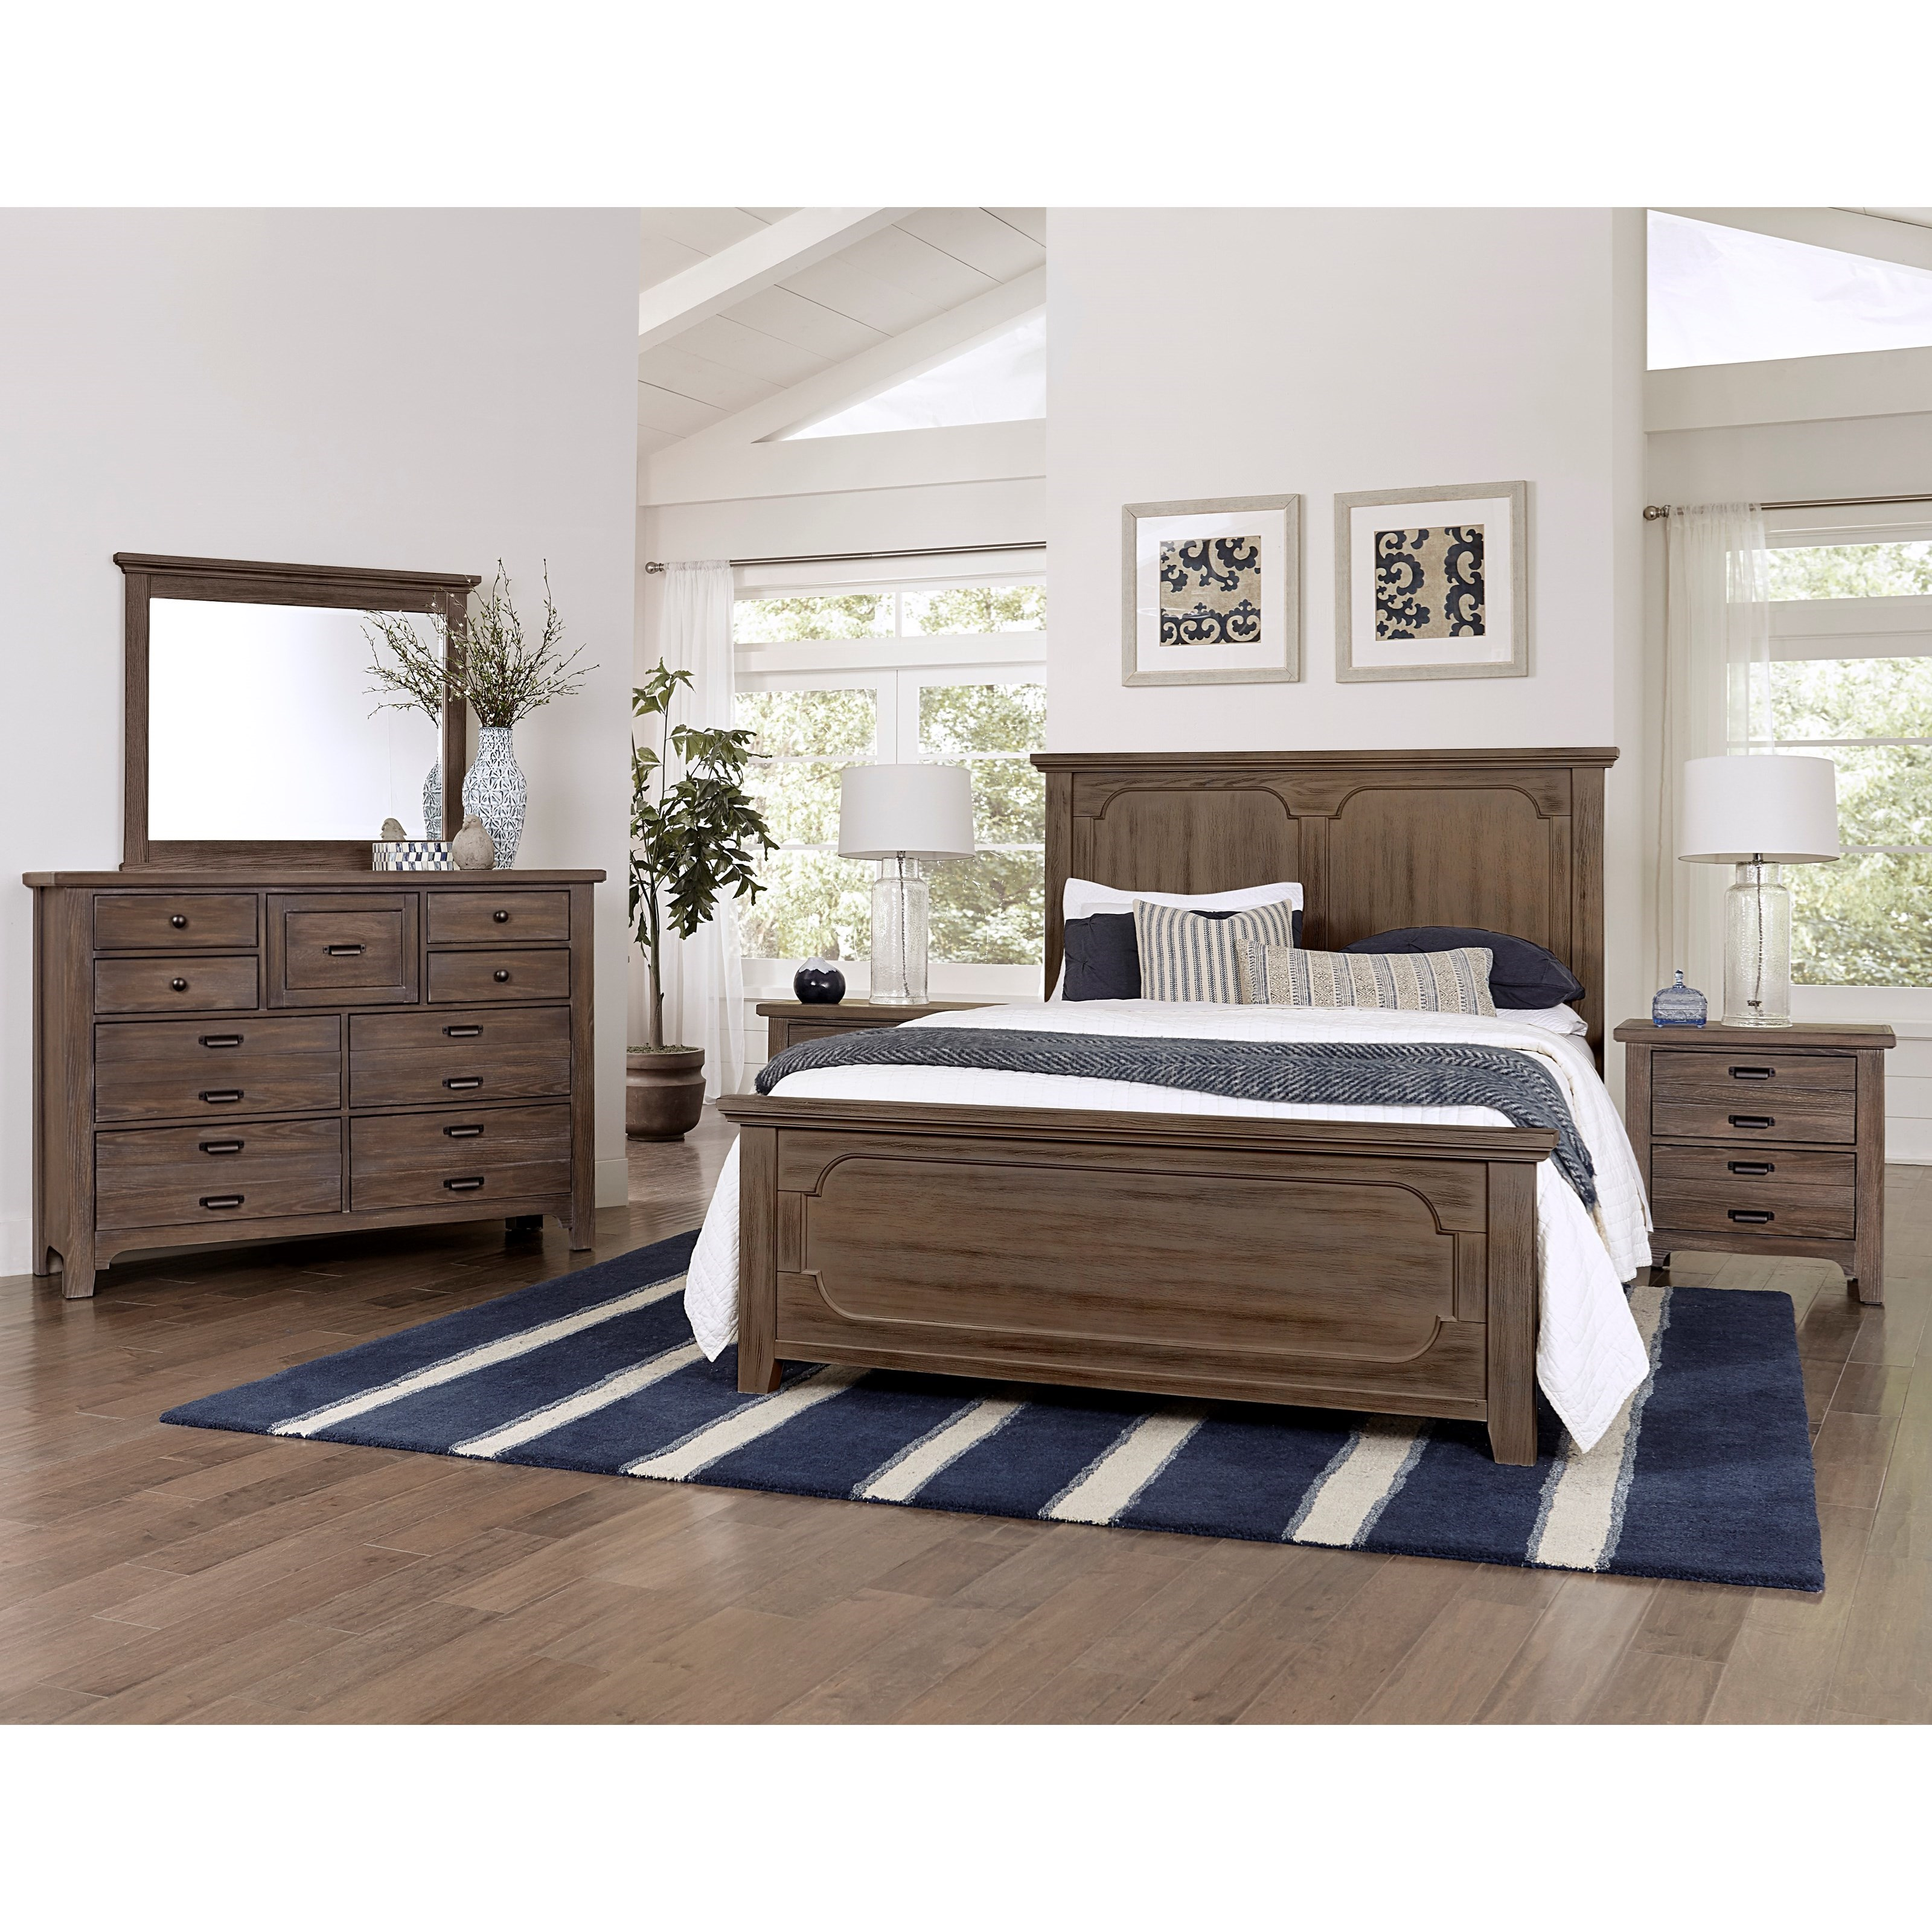 Bungalow Queen Bedroom Group by Laurel Mercantile Co. at Suburban Furniture